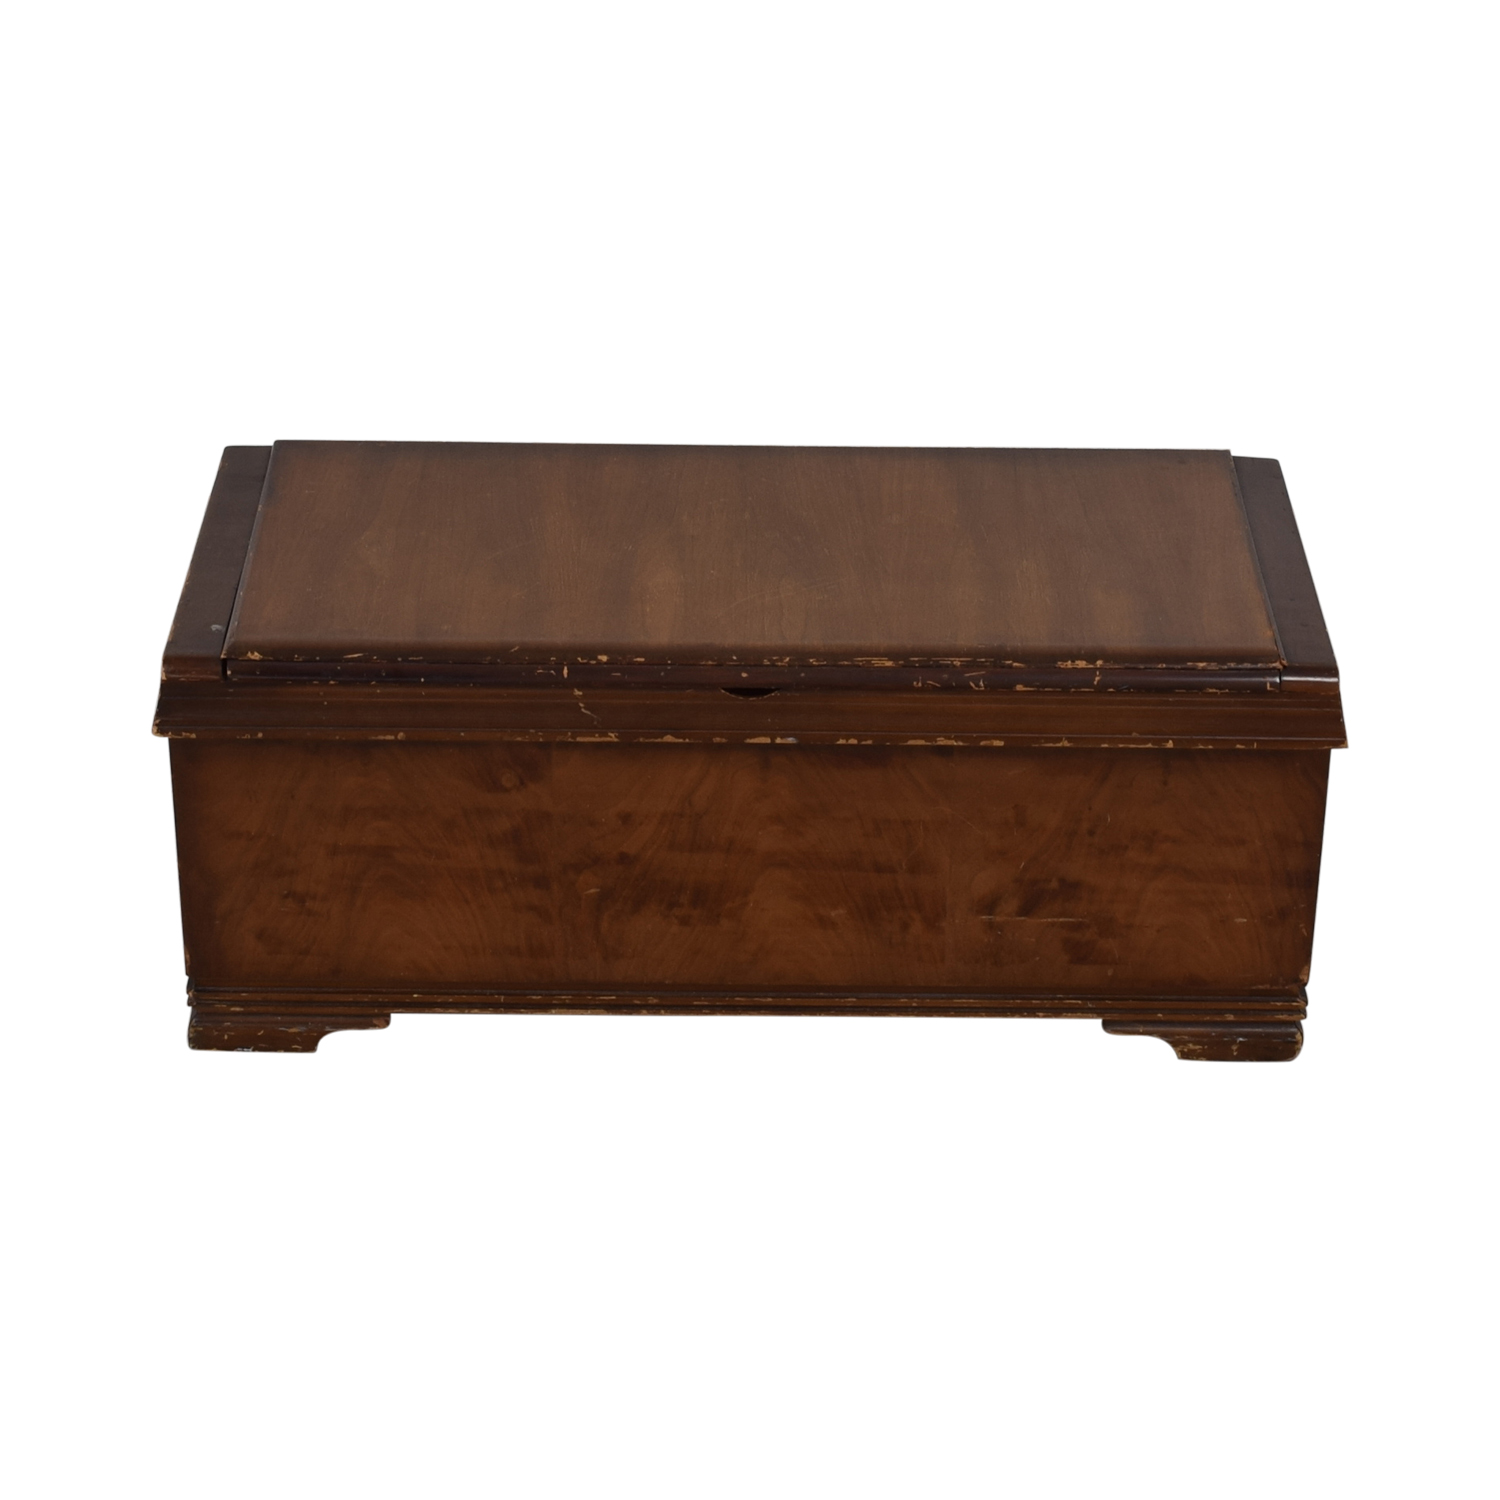 Wooden Trunk used